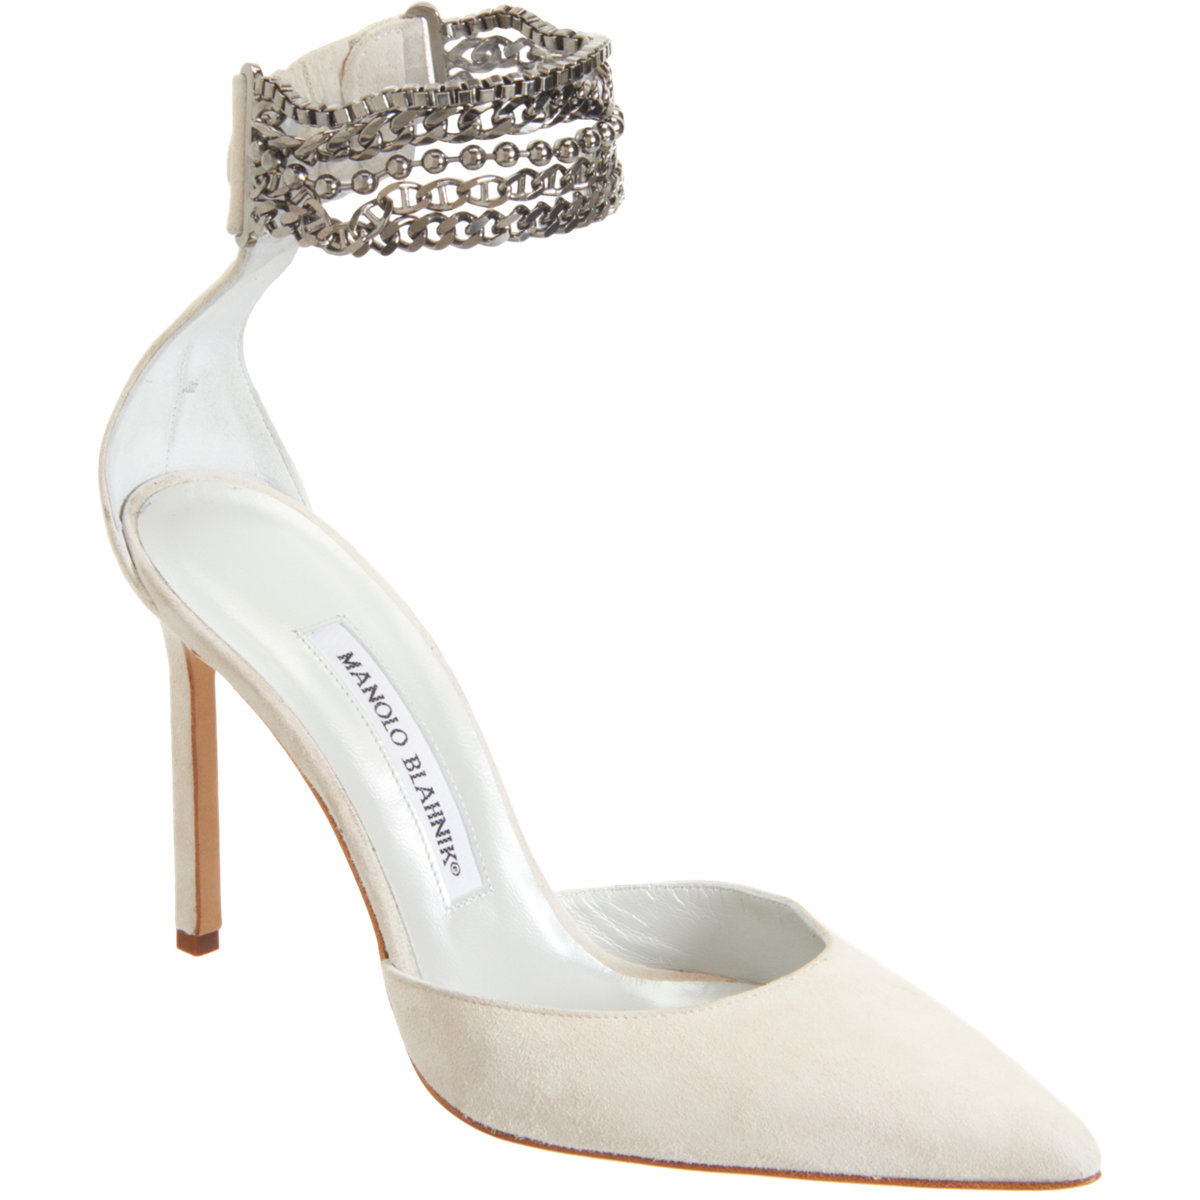 MANOLO BLAHNIK Suede Evolu buy HERE